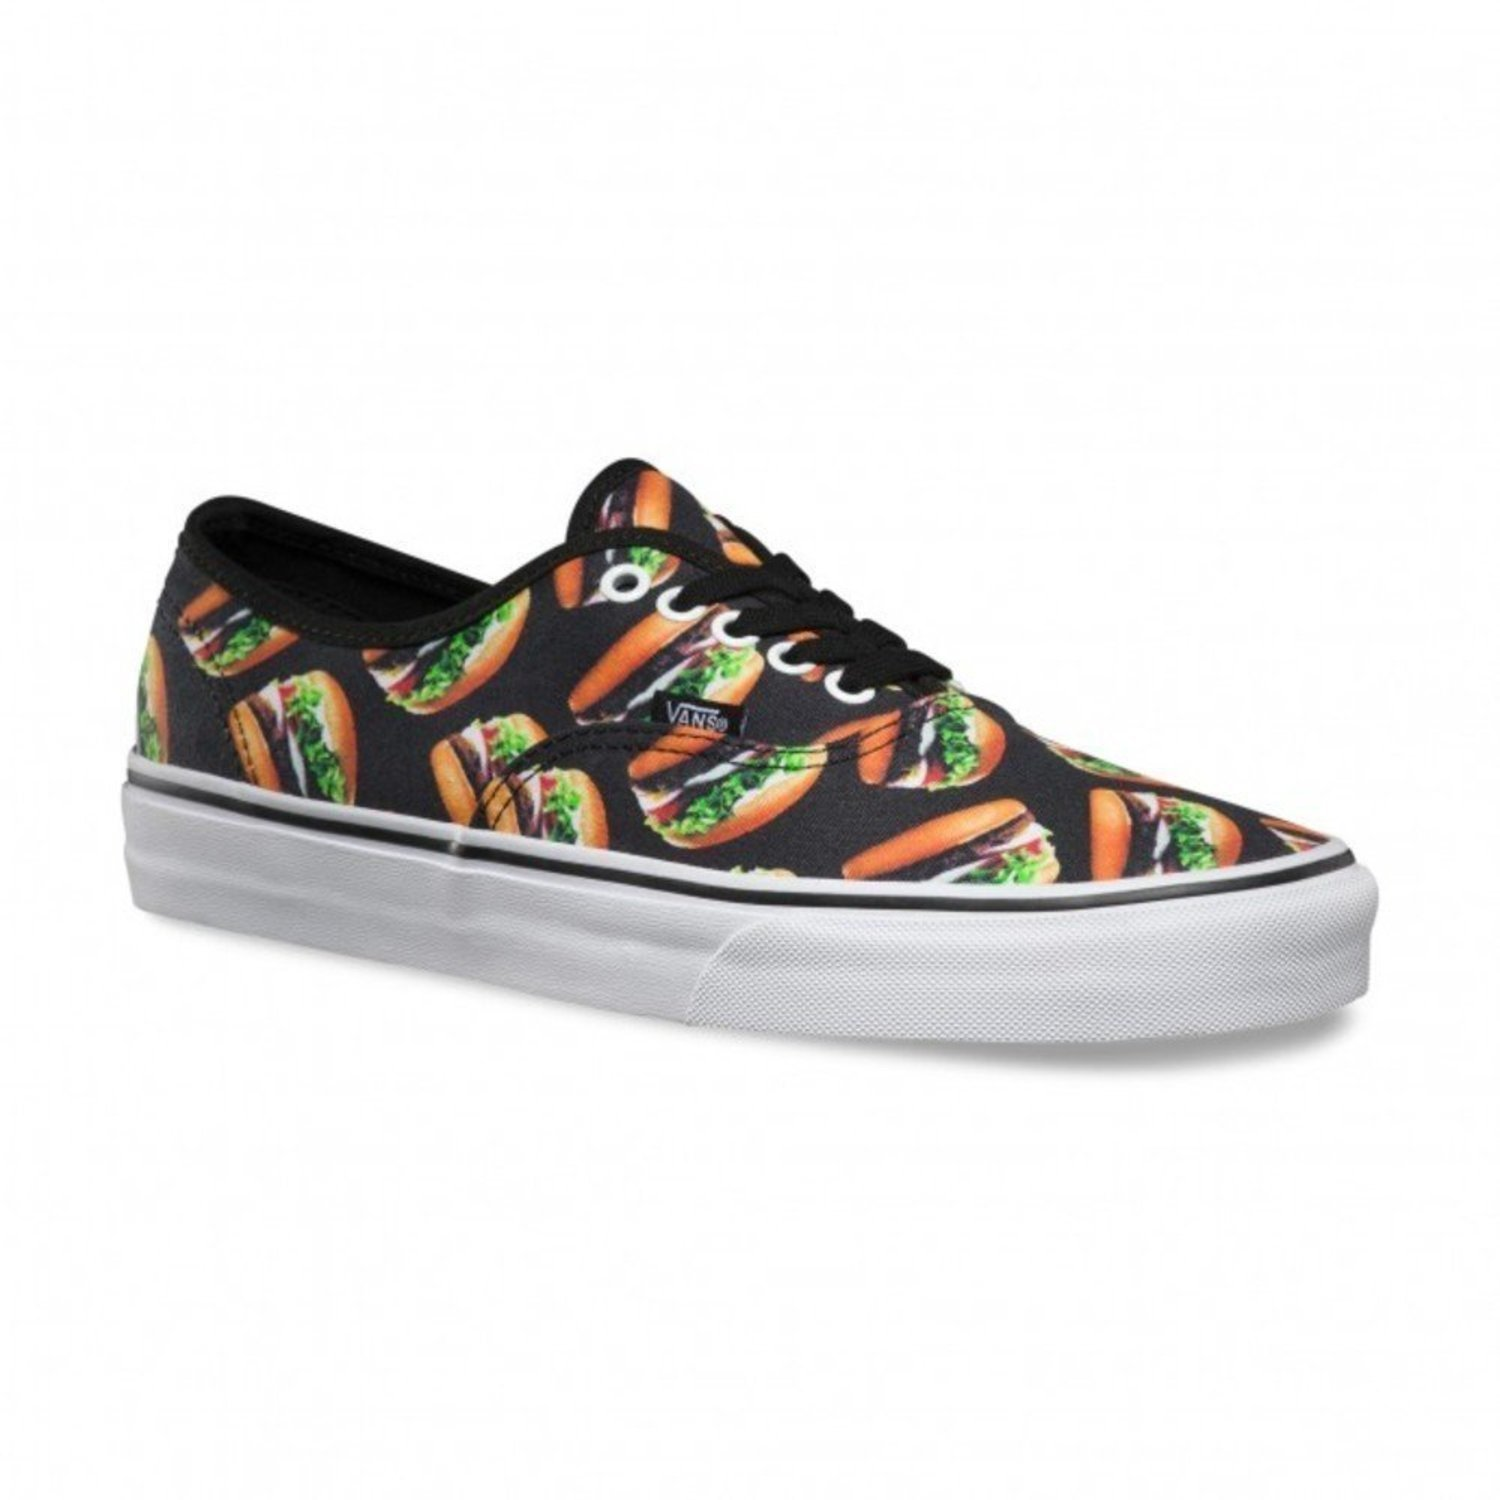 a61b661207 VANS AUTHENTIC LATE NIGHT BLACK BURGERS SHOES SS 2016 NEW 40 41 42 ...